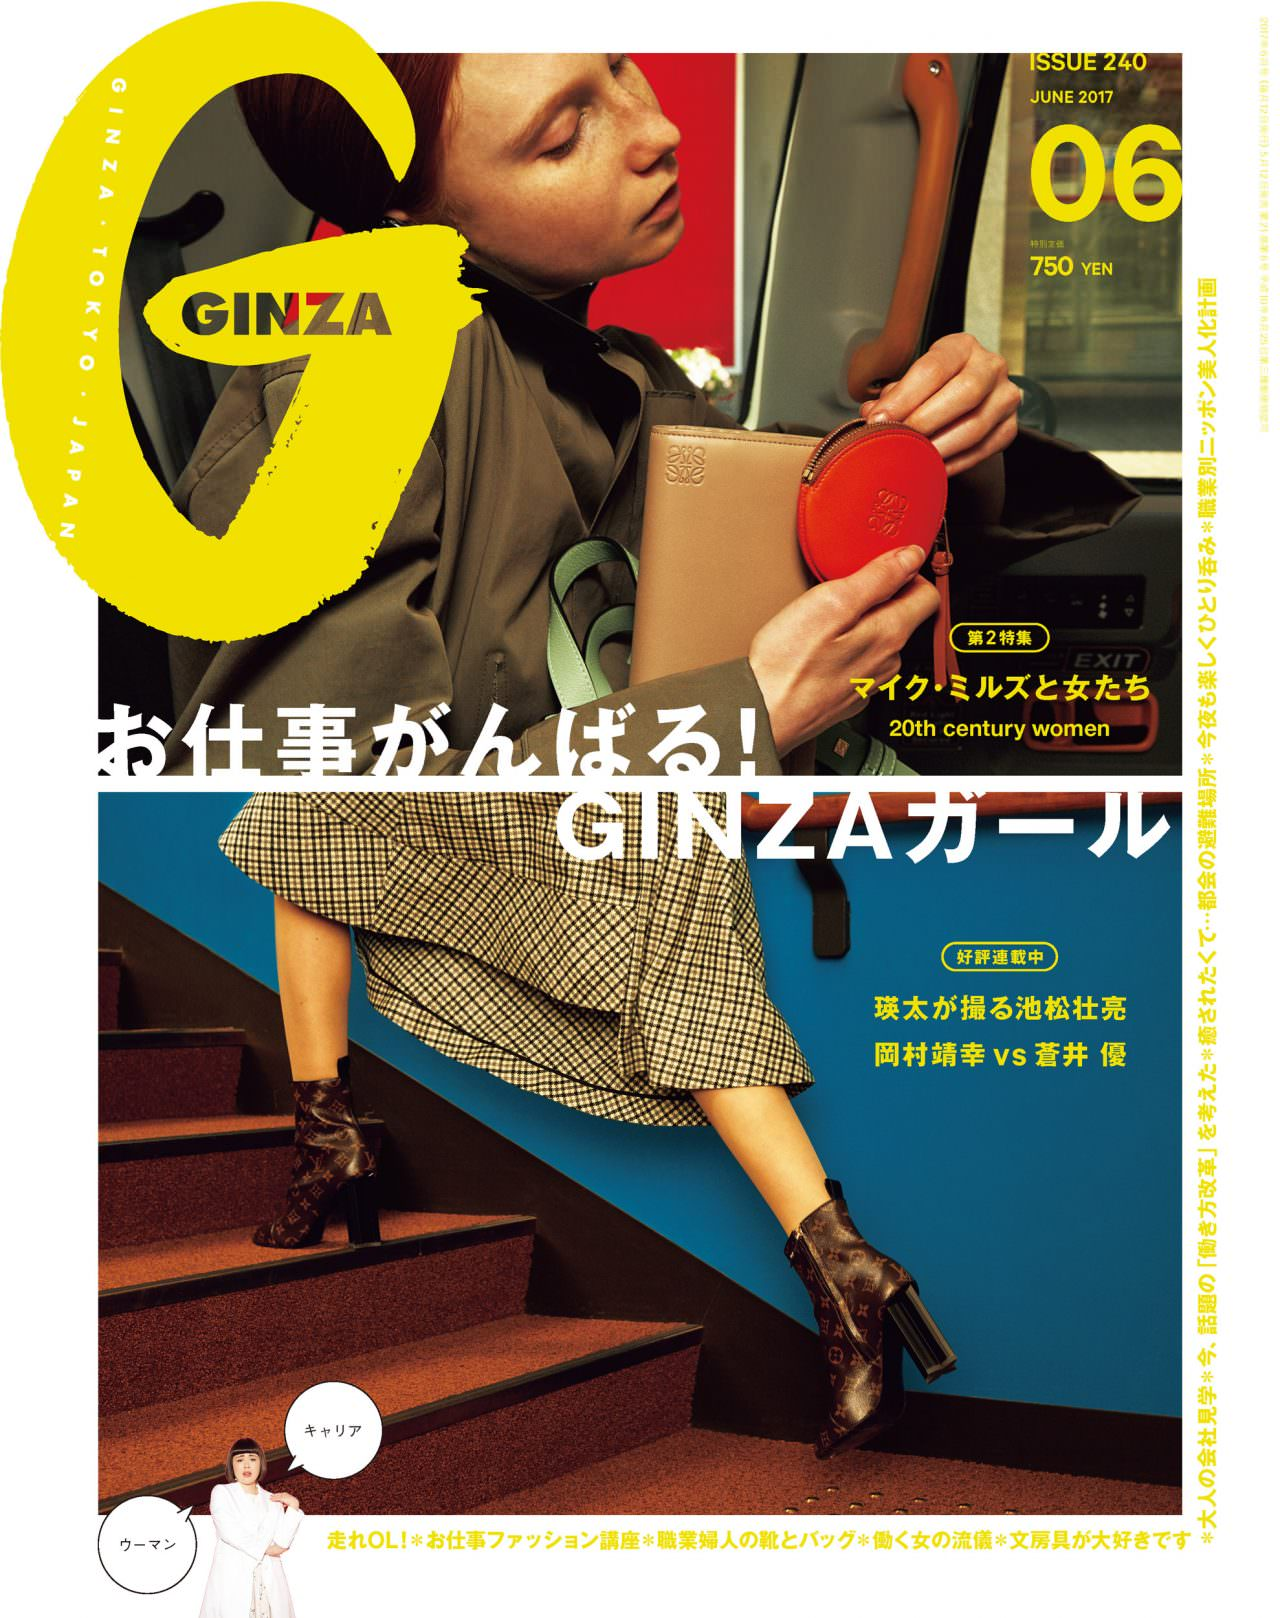 GINZA June 2017 press